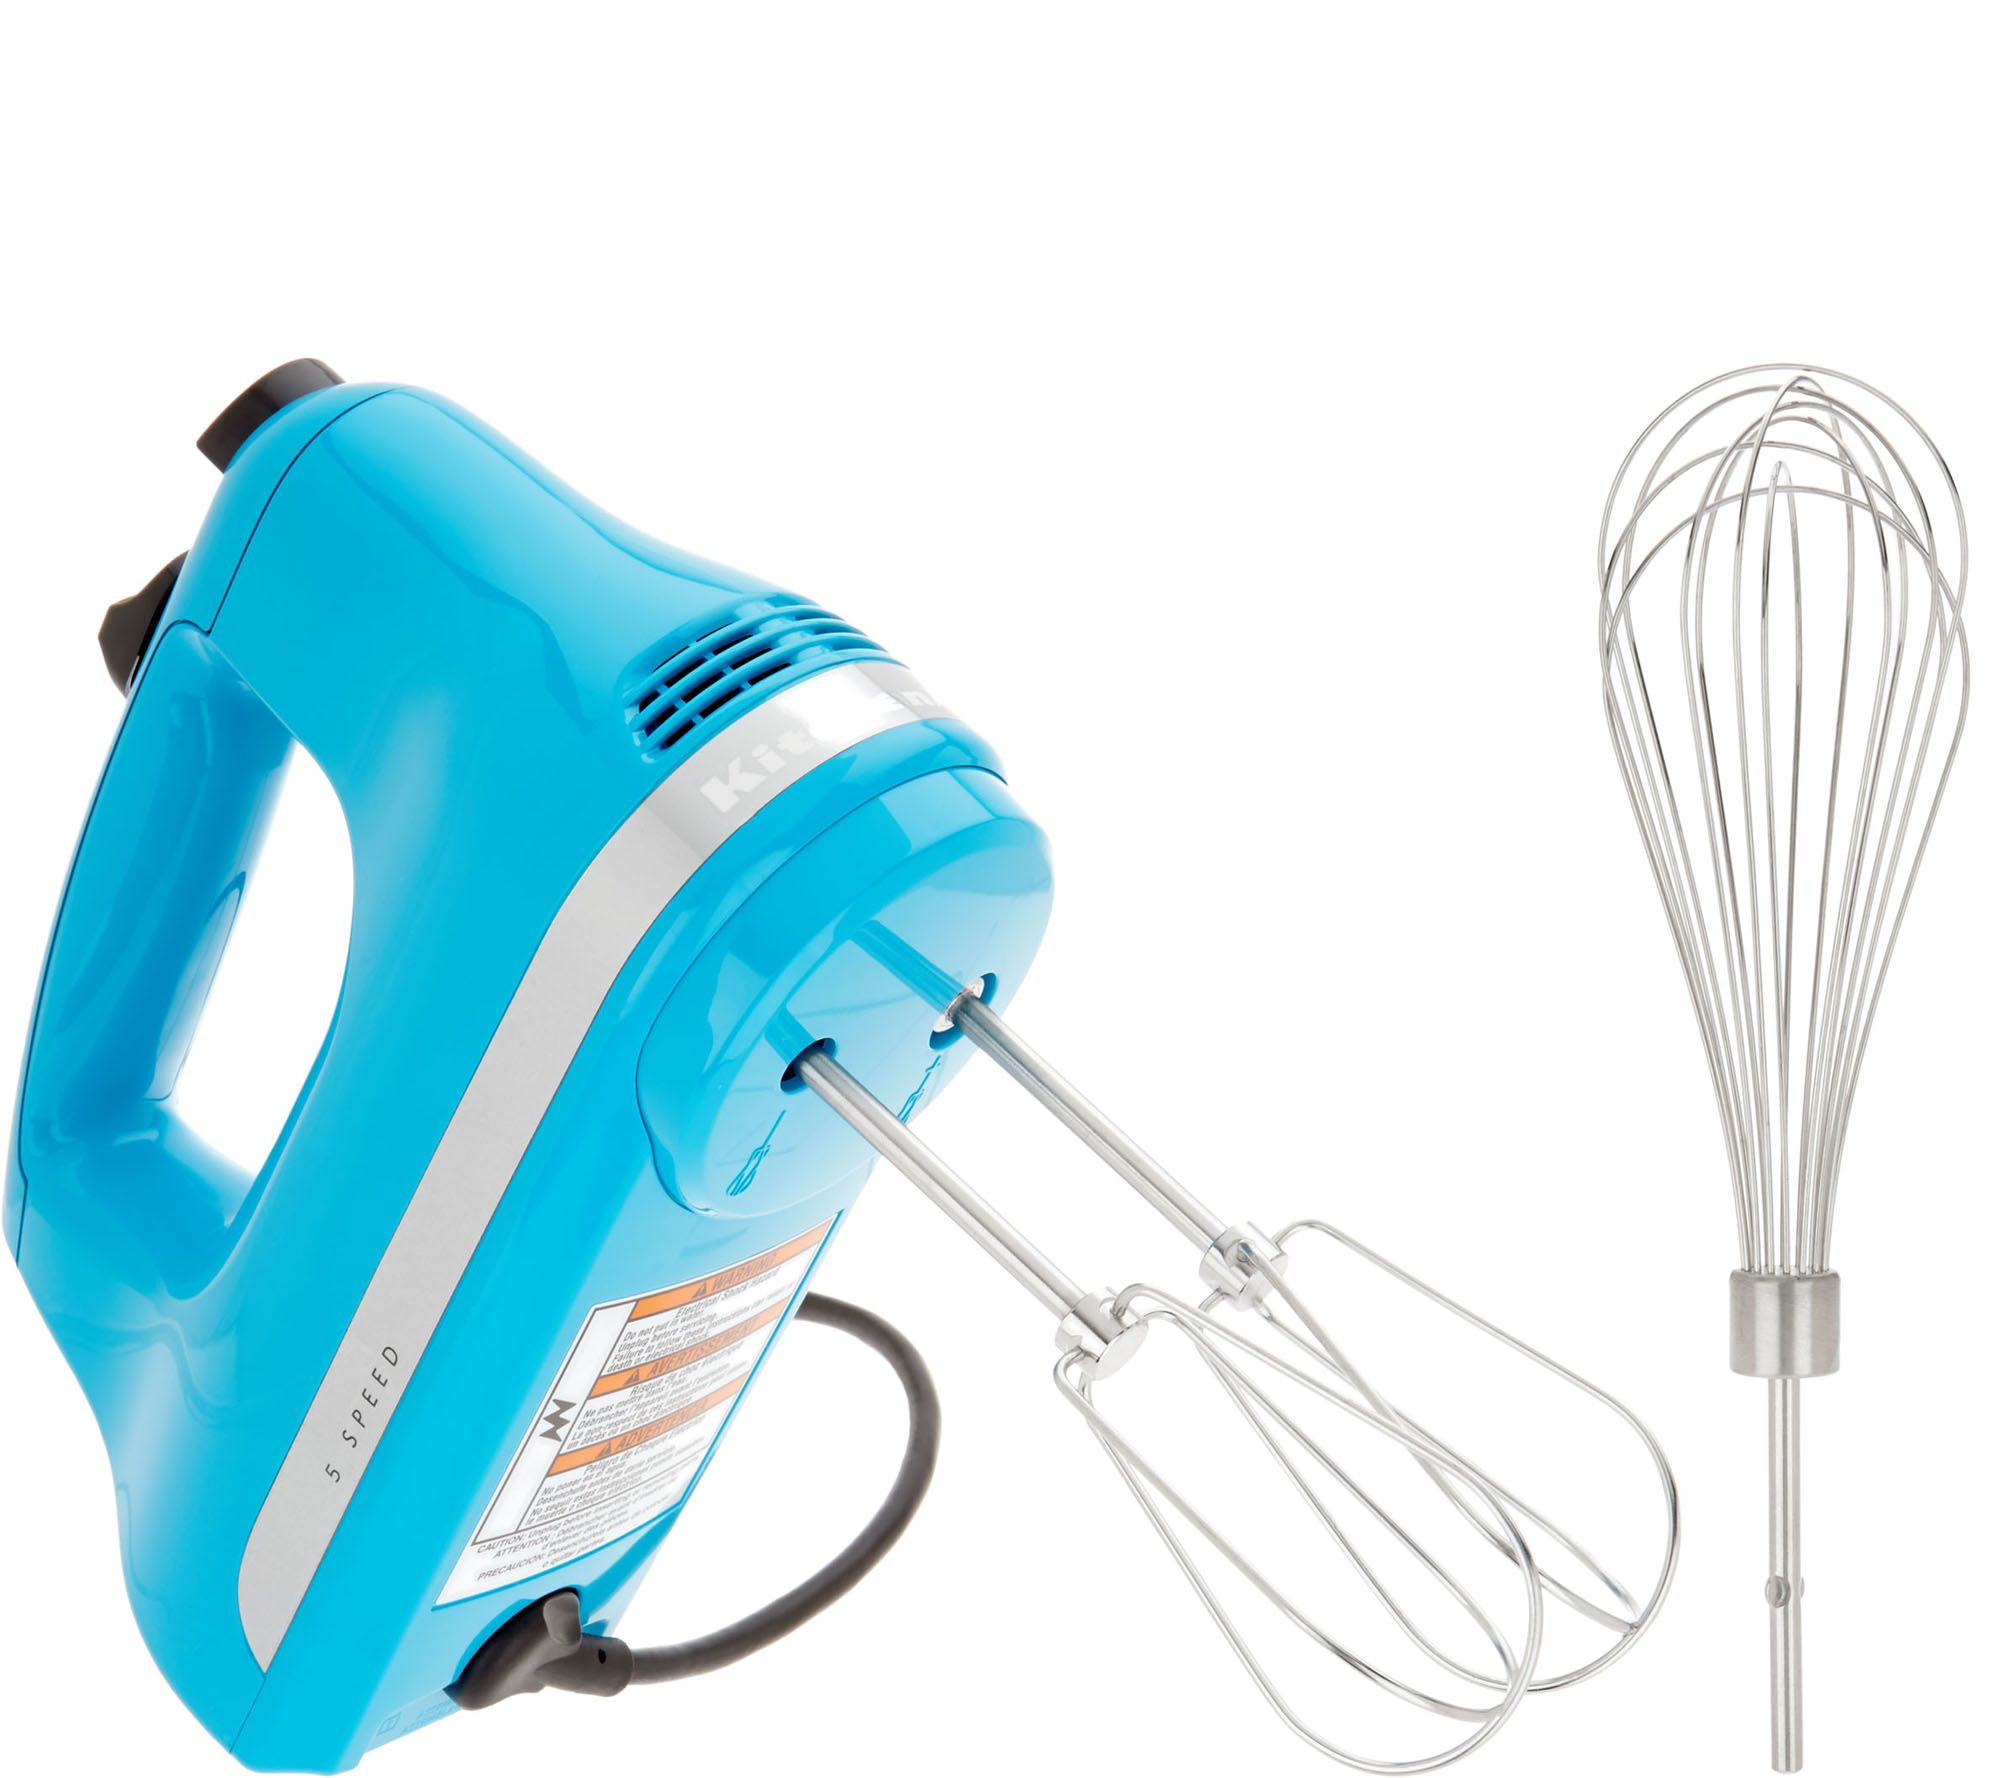 KitchenAid 5-Speed Hand Mixer w/Wire Whisk w/ Wire Whisk — QVC.com